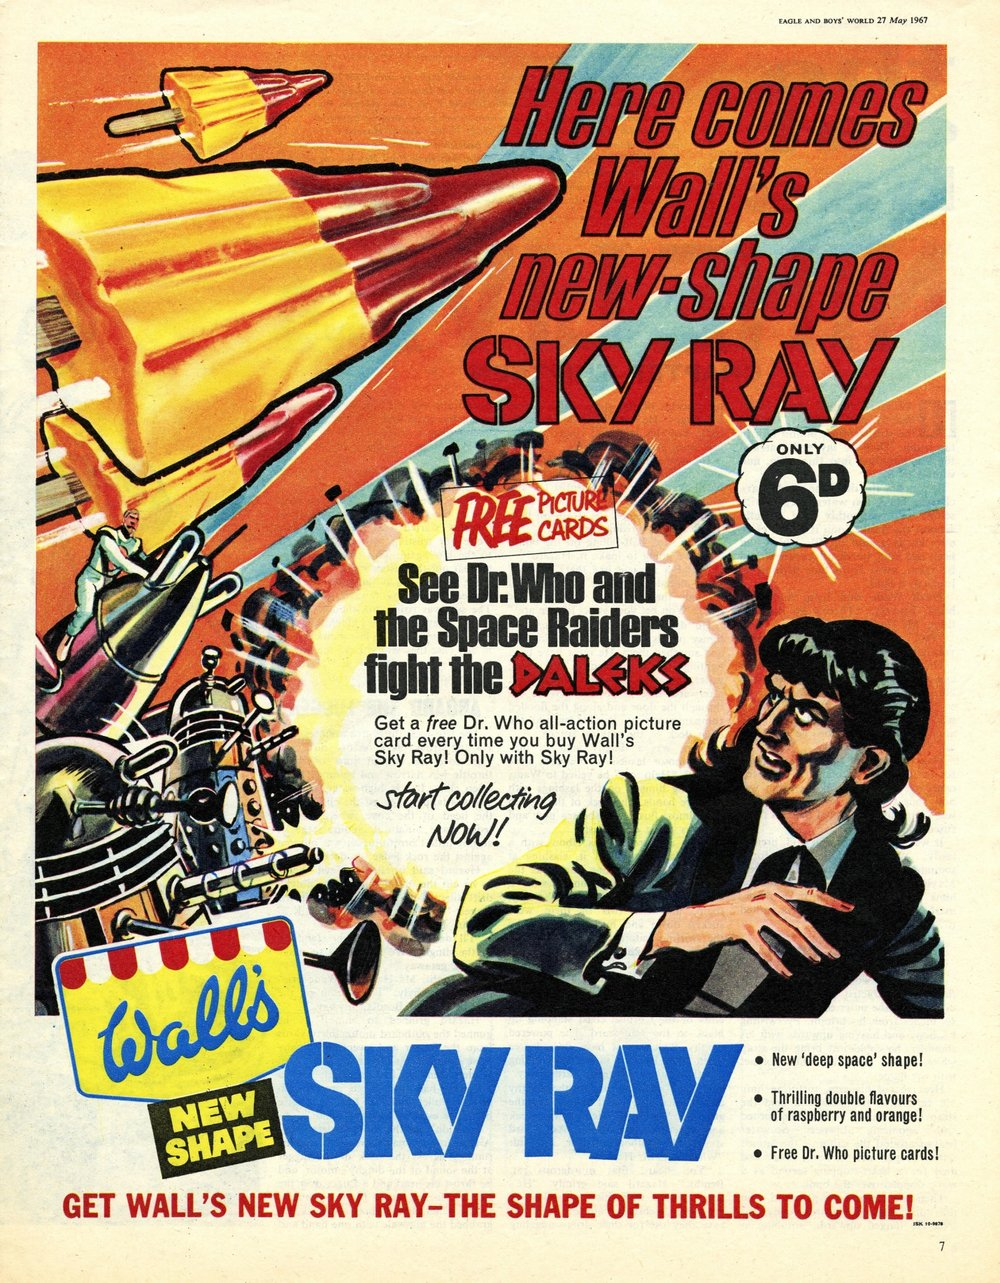 Ad. for Wall's Sky Ray in Eagle & Boys World, vol. 18, number 21, 27 May 1967